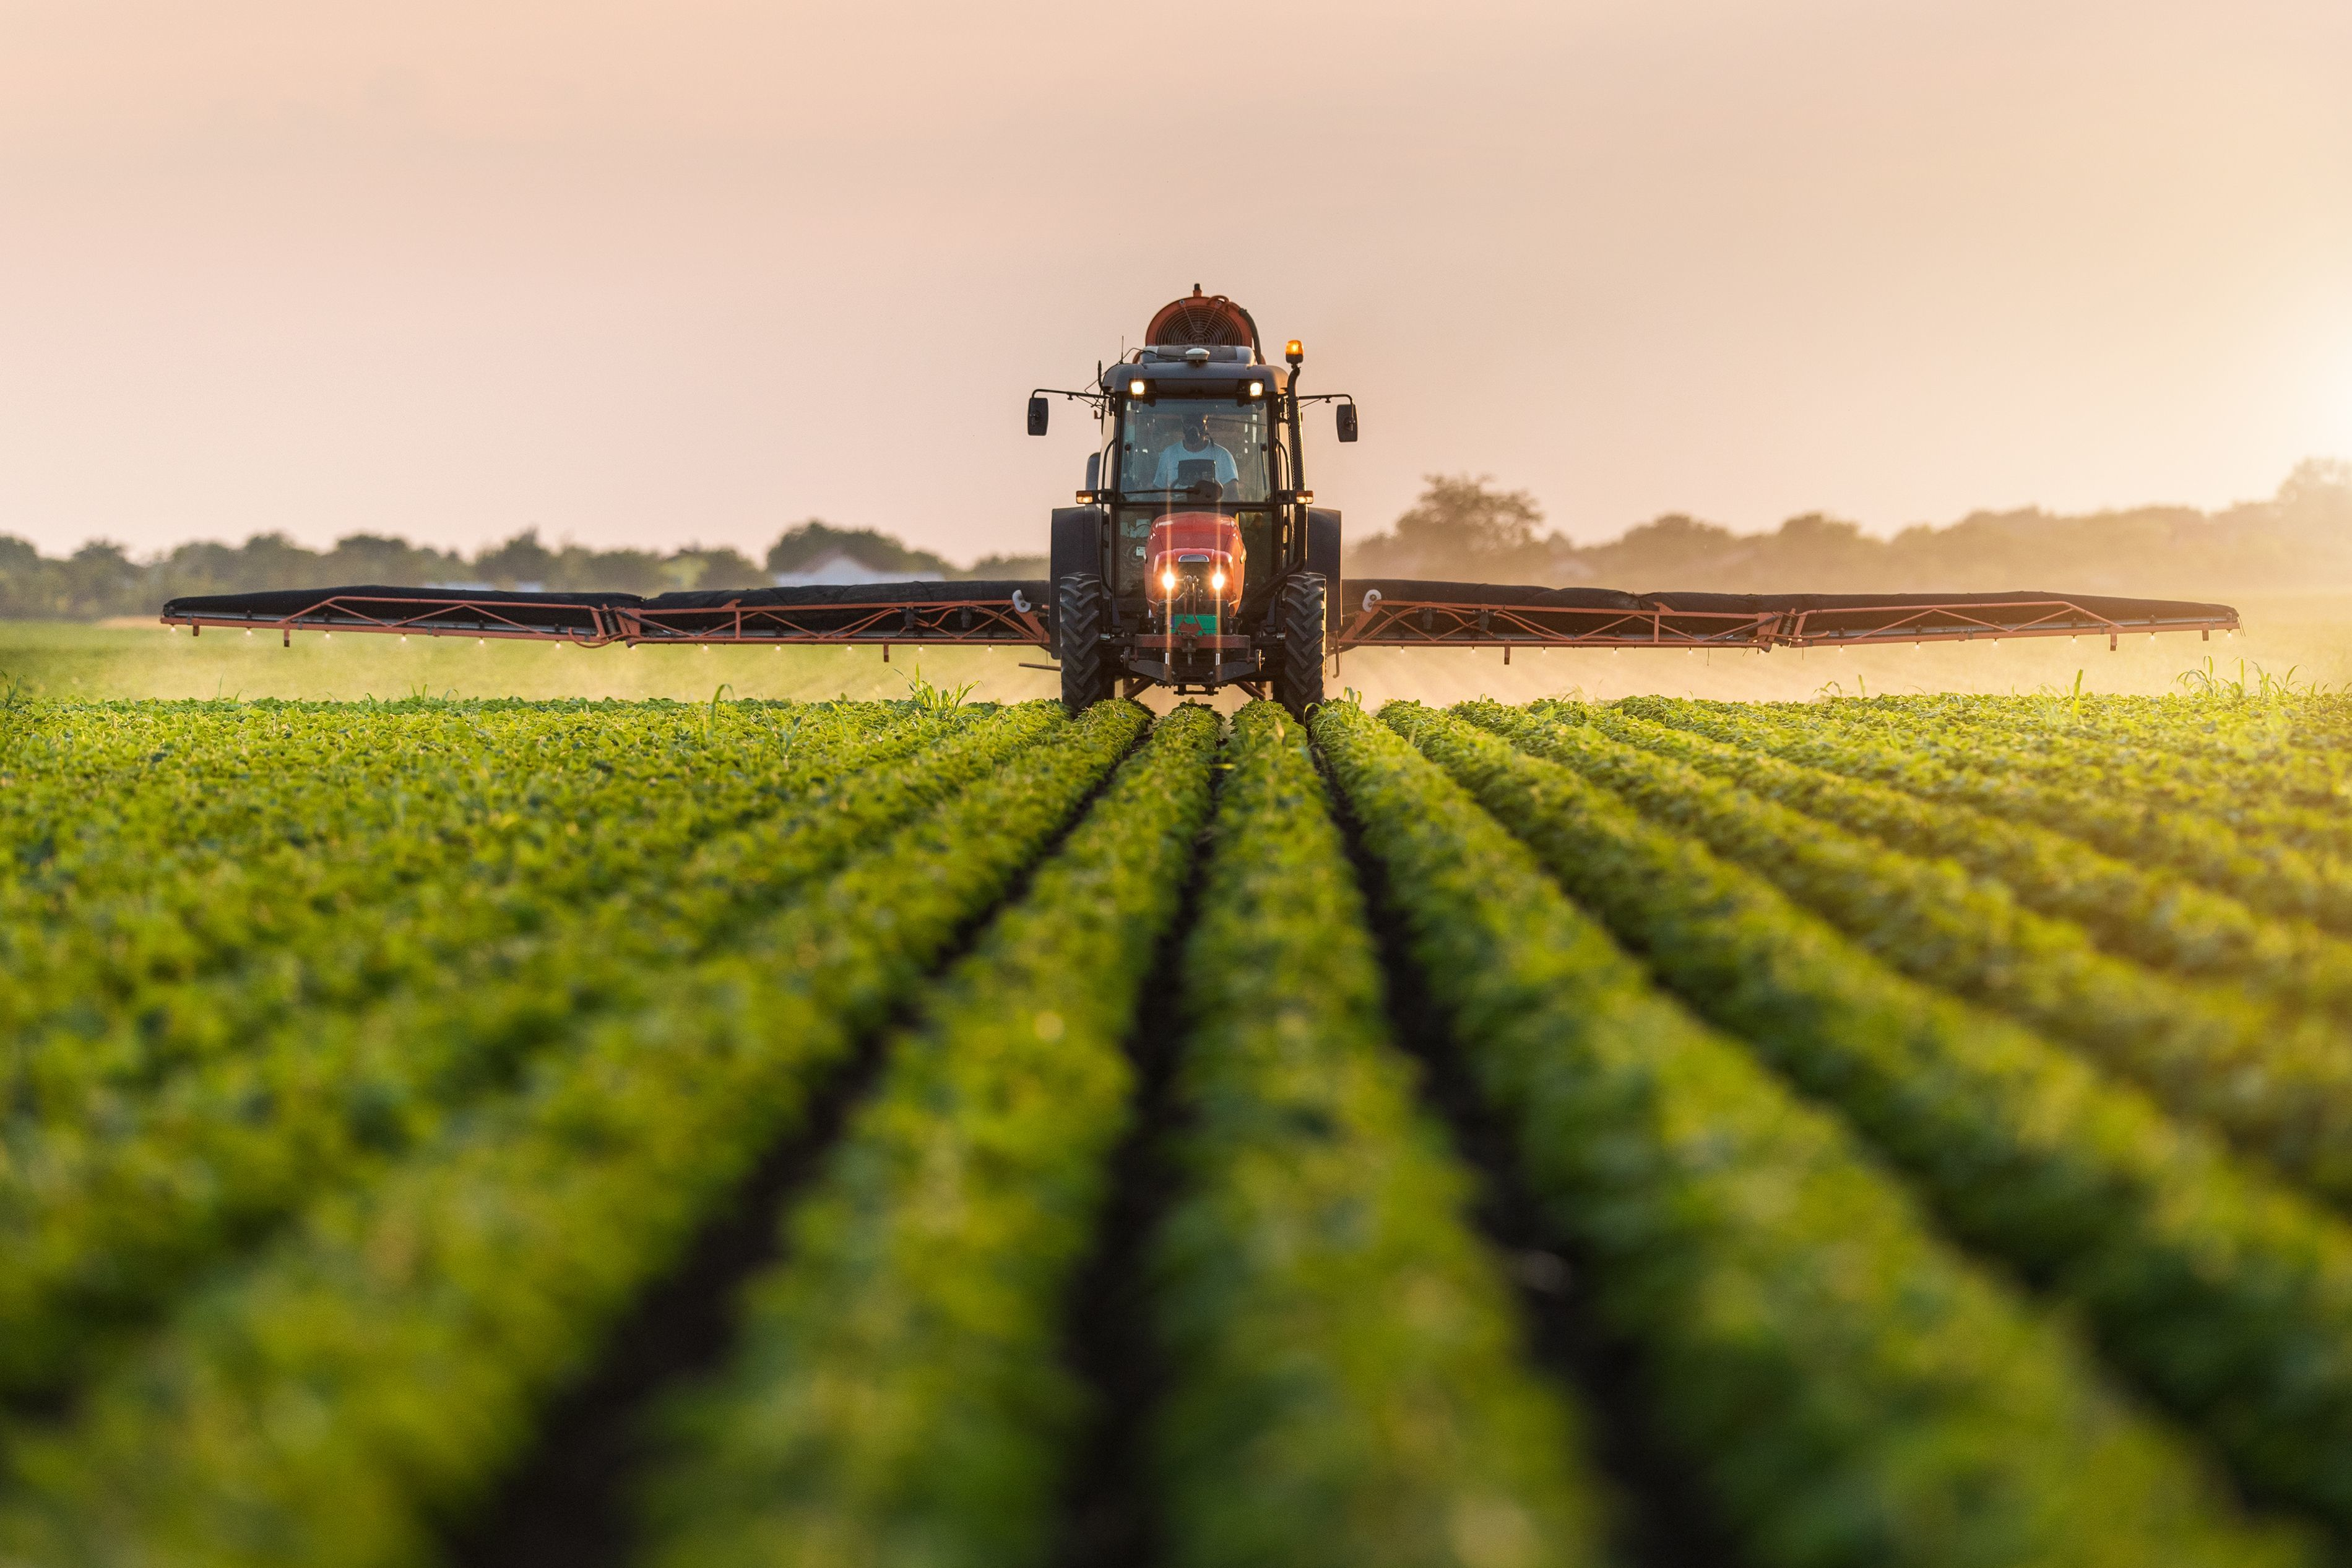 a tractor moving through a crop spraying several rows to either side